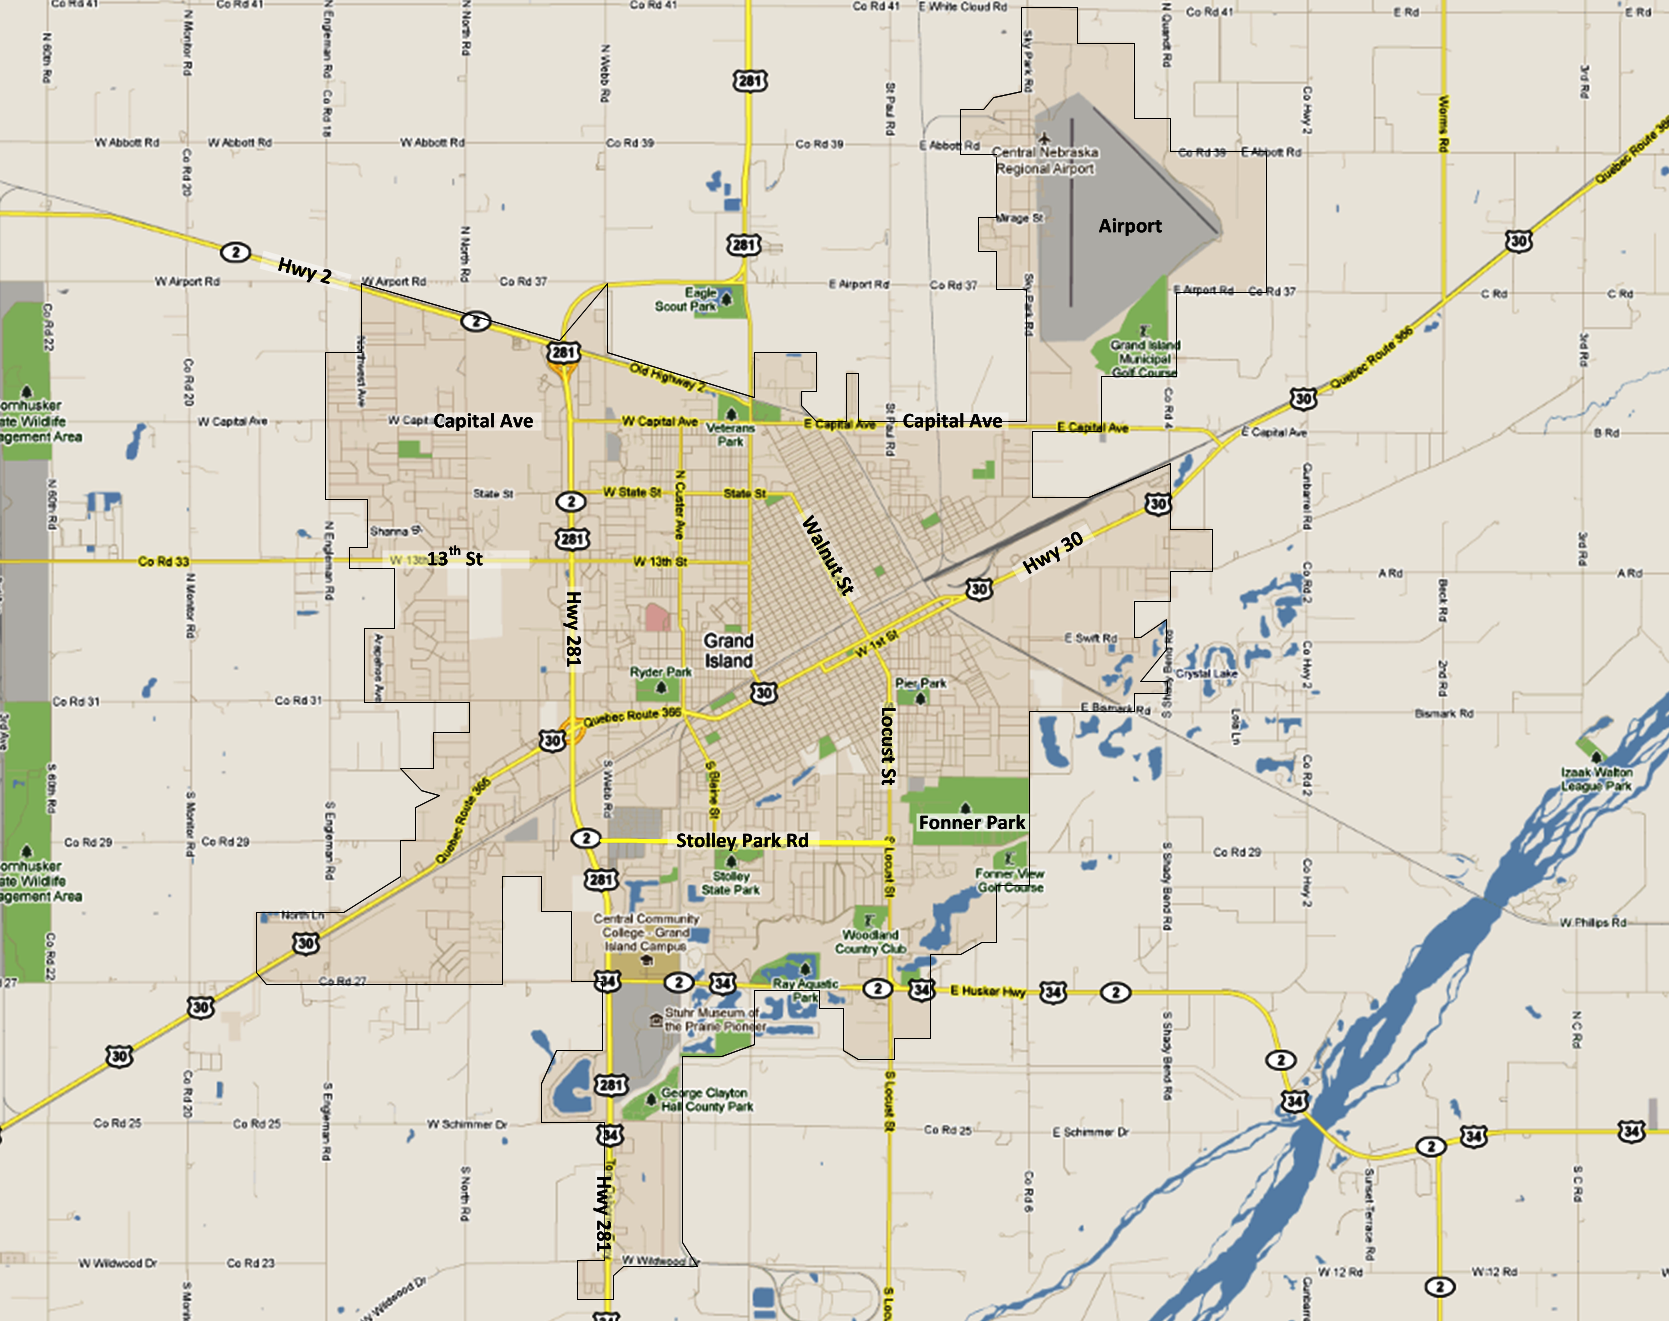 Beehive HomeBase - City map of nebraska